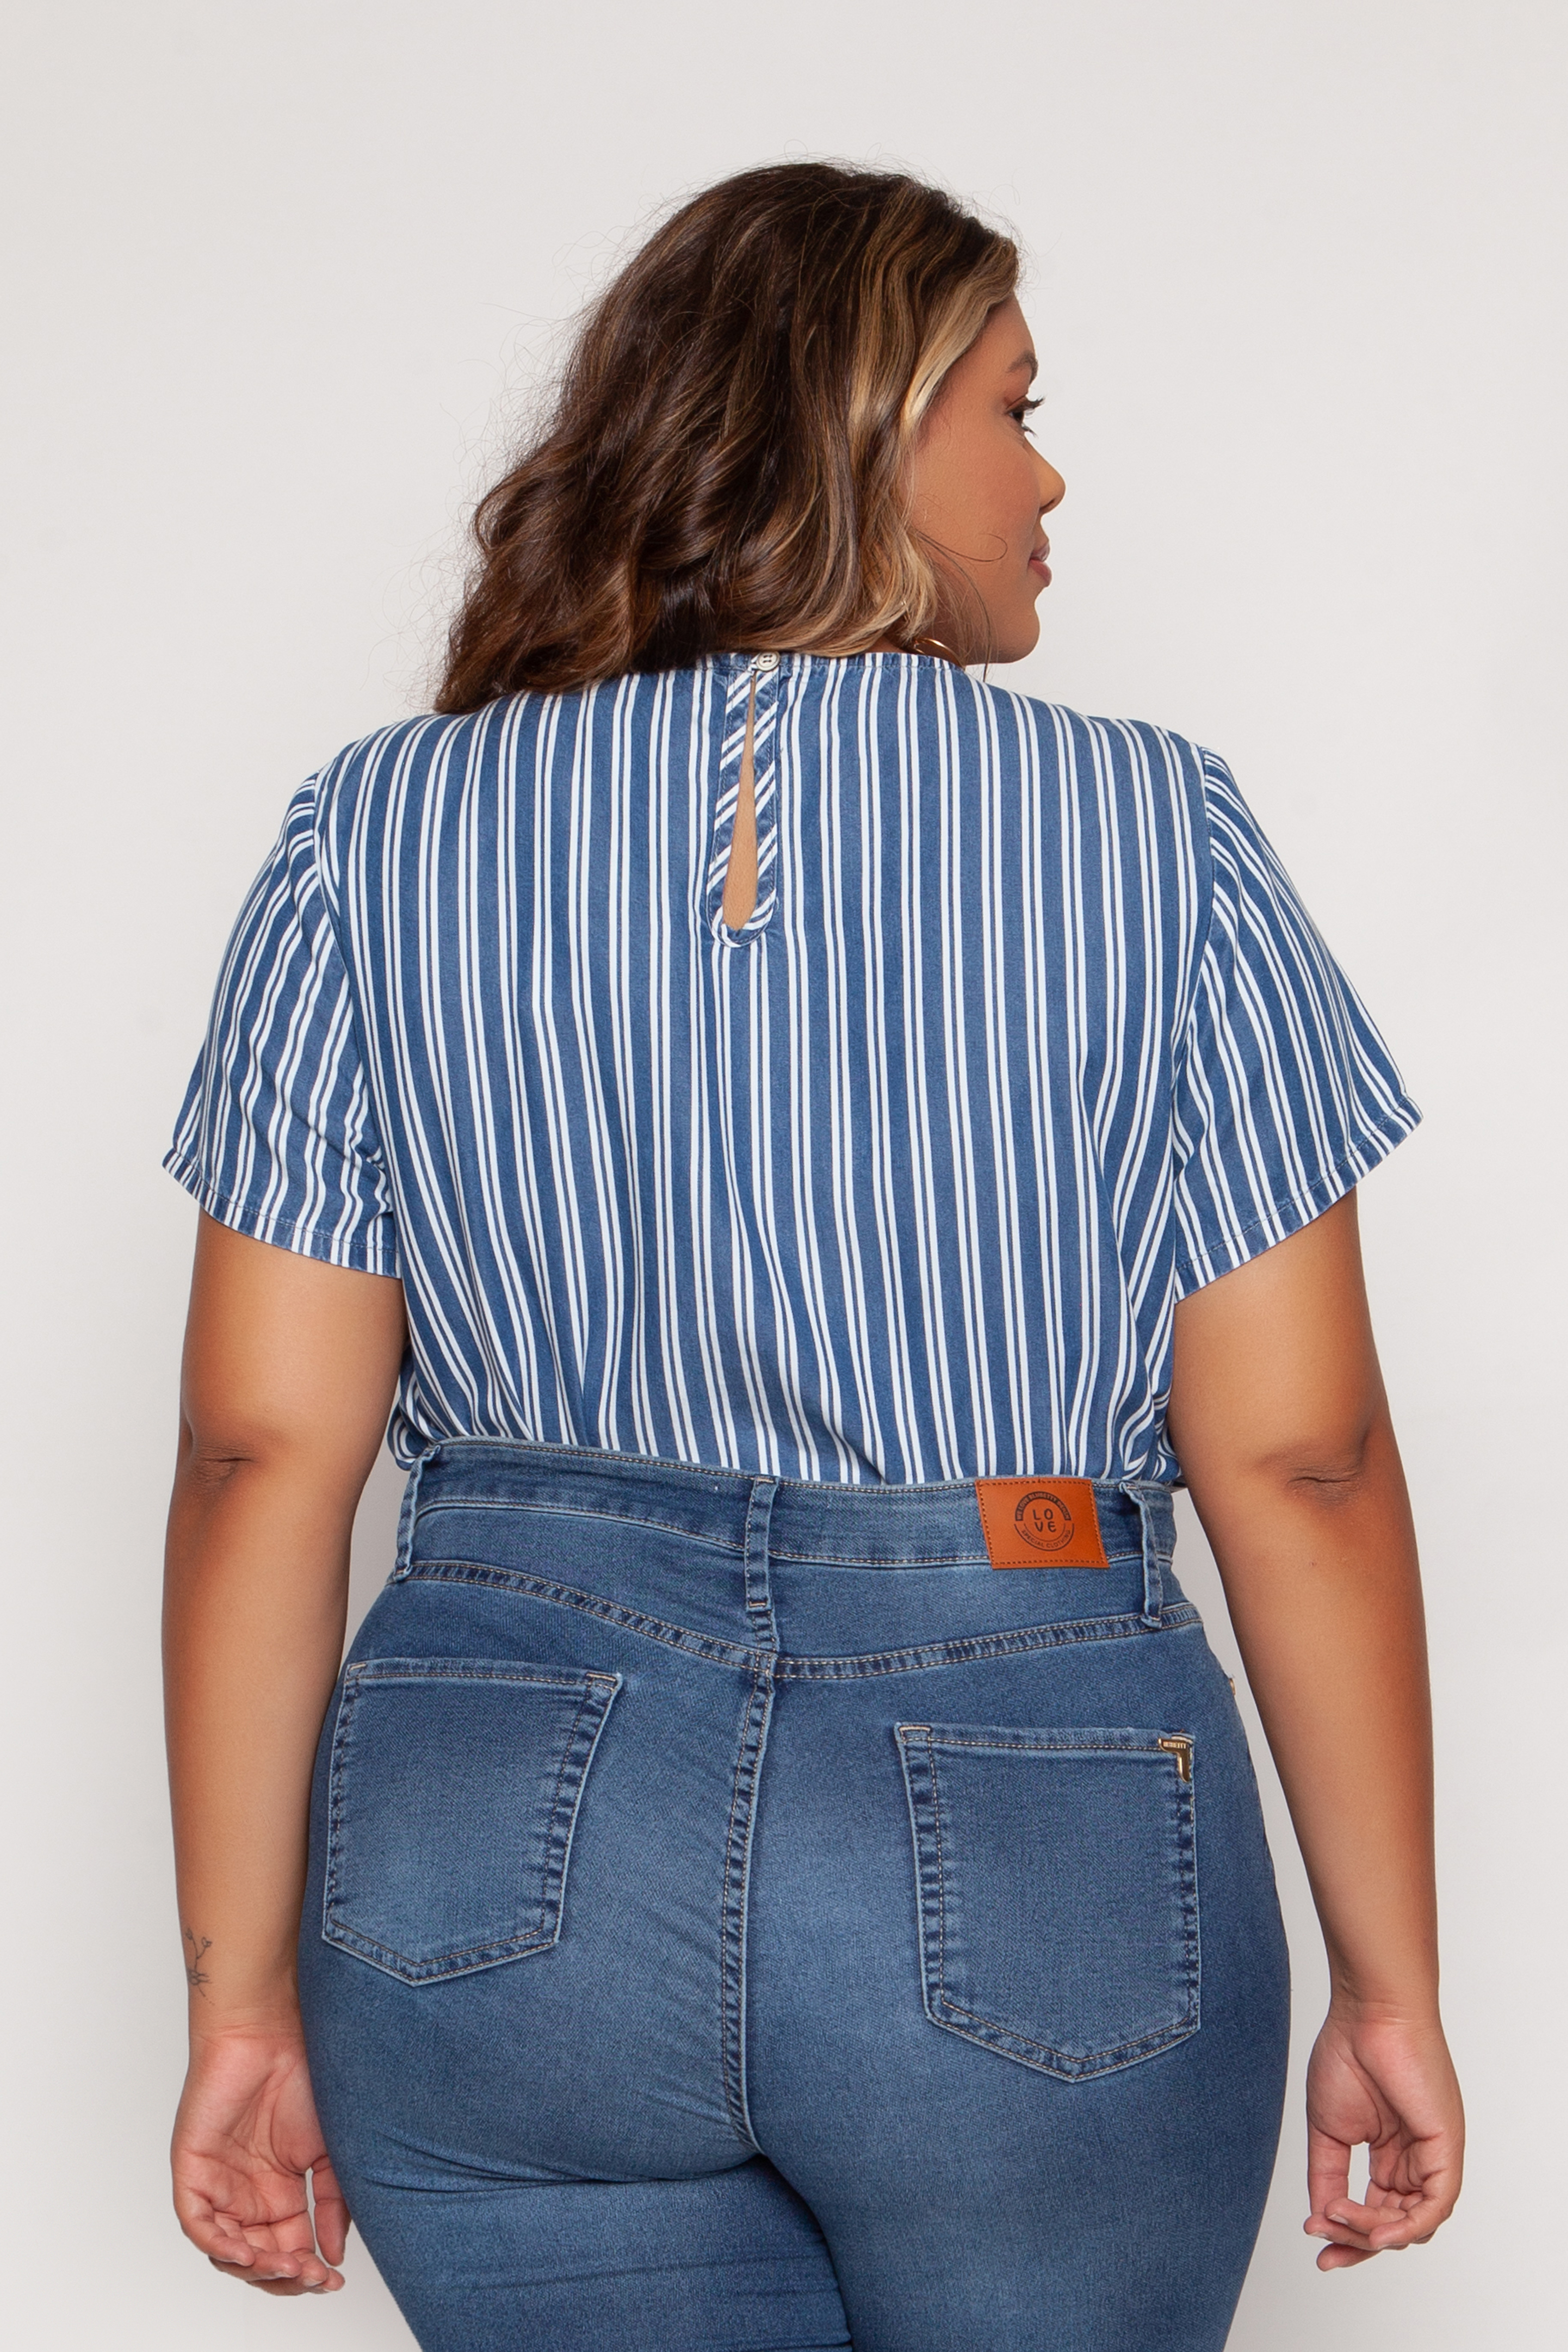 LS1937_Blusa_Plus_Size_Cropped_Listrada_Verona_Jeans_AZUL_2